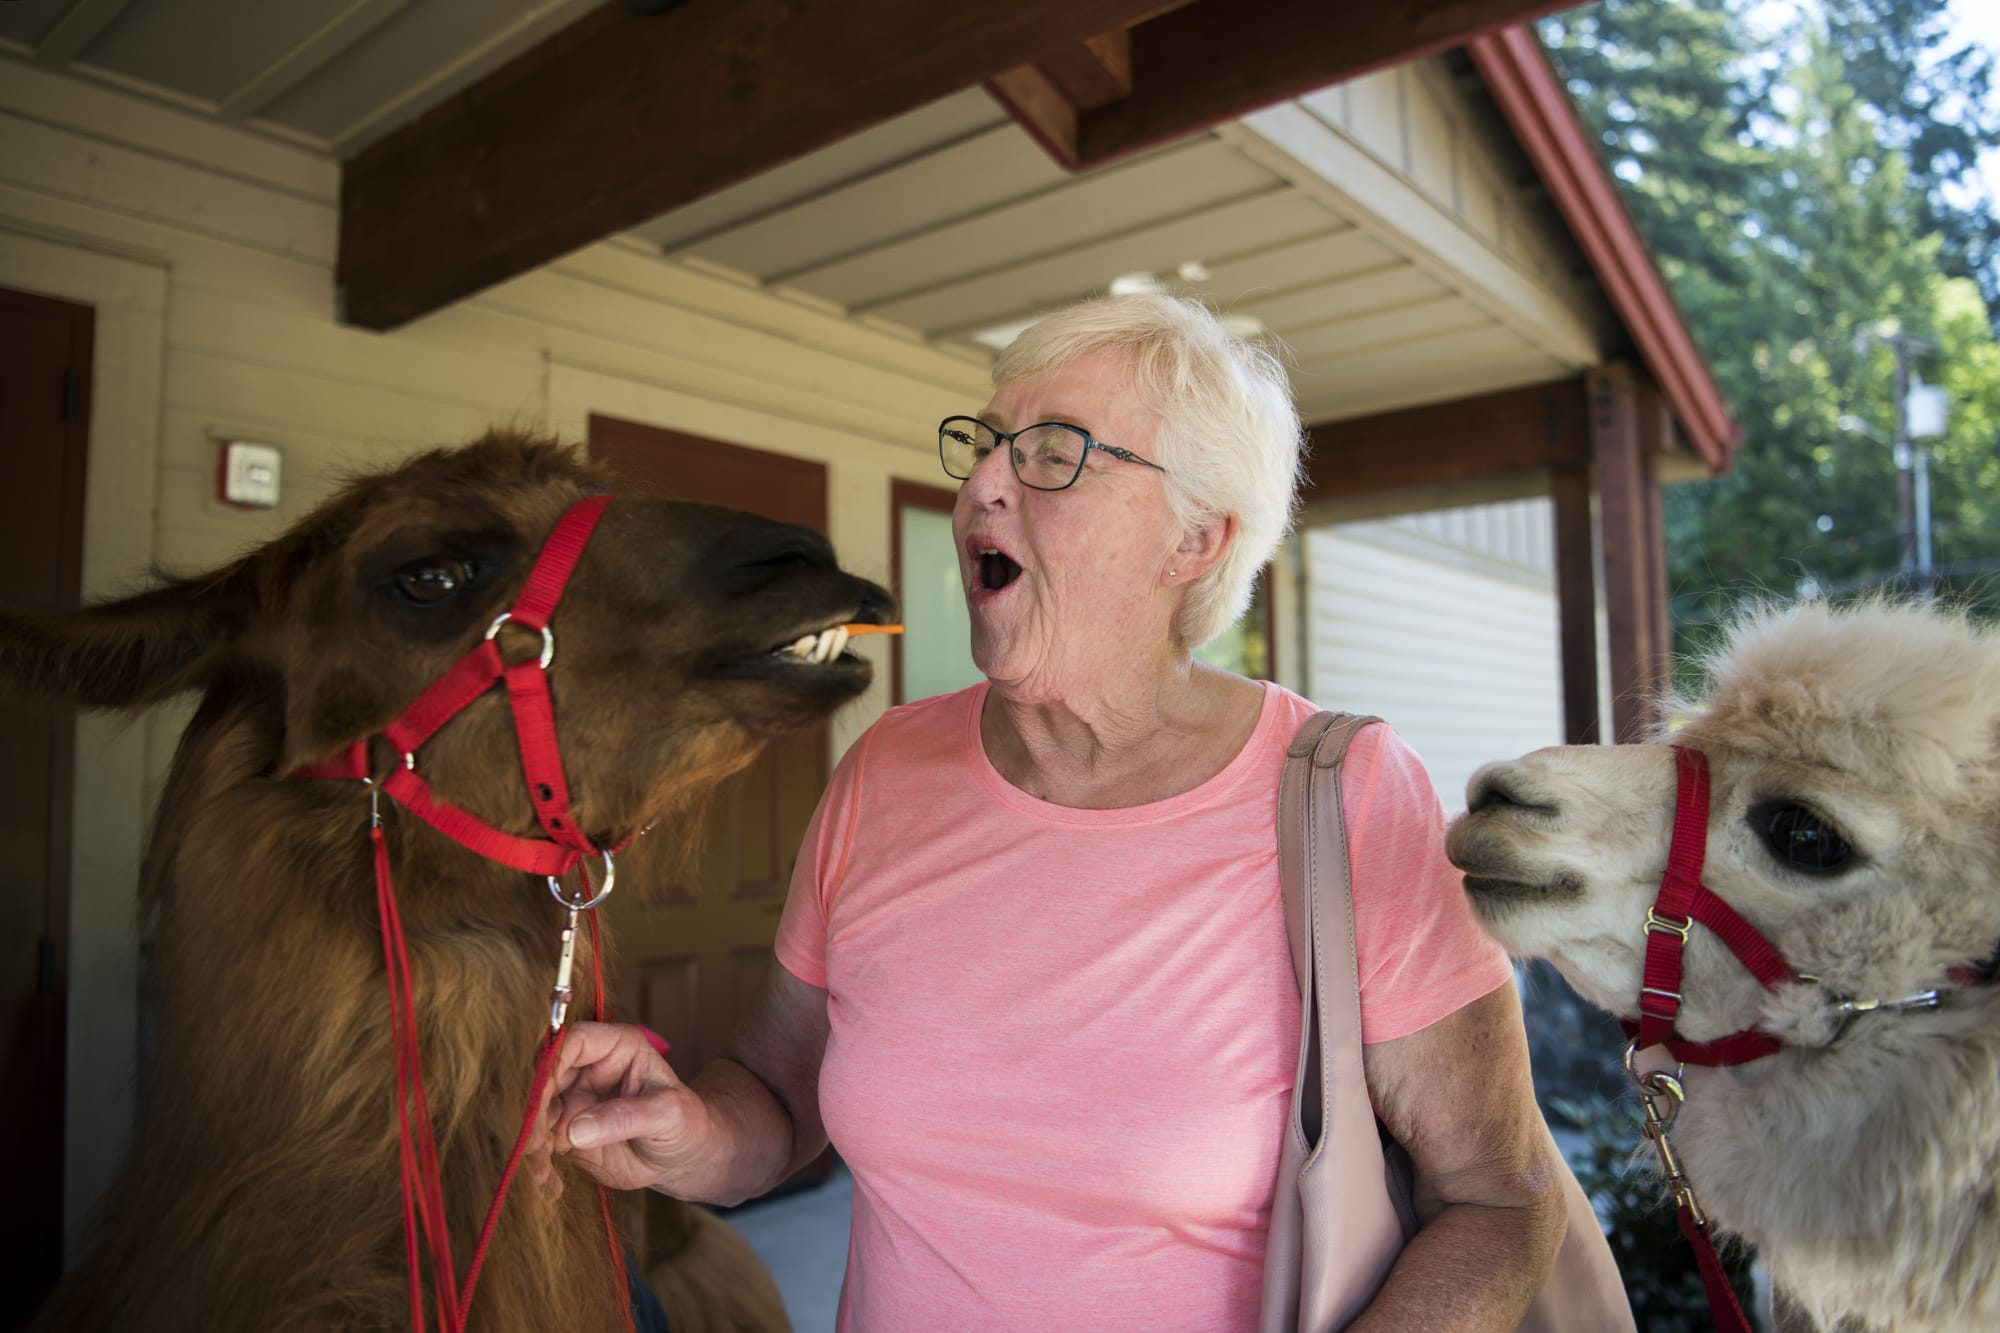 Joanne Haberlock of Vancouver feeds carrot sticks to Rojo the llama, left, and Napoleon the alpaca, right, during the Seniors and Law Enforcement Together annual picnic at the Lacamas Lake Lodge in Camas on Monday afternoon, July 23, 2018. Rojo and Napoleon, from Mountain Peaks Therapy Llamas and Alpacas, arrived at the event early to welcome the seniors.    (Alisha Jucevic/The Columbian)